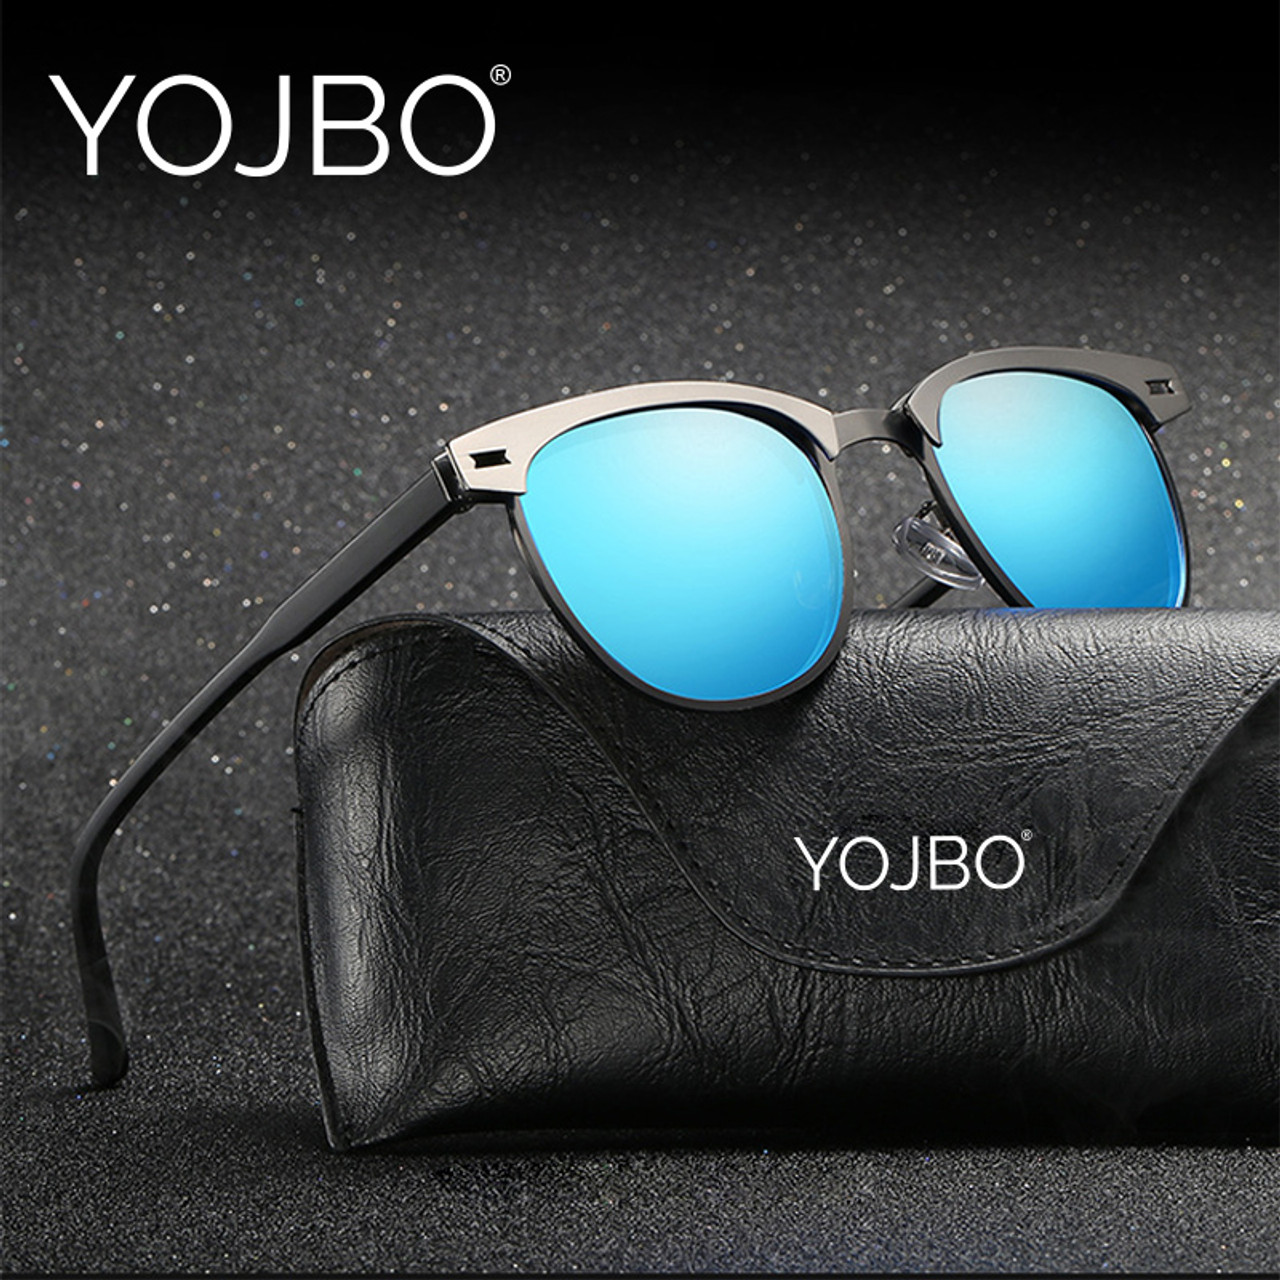 aa8fff48072d YOJBO Aviator Sunglasses Men Polarized 2018 Male Ladies Retro Mirror Women  Vintage Shades Luxury Brand Designe ...